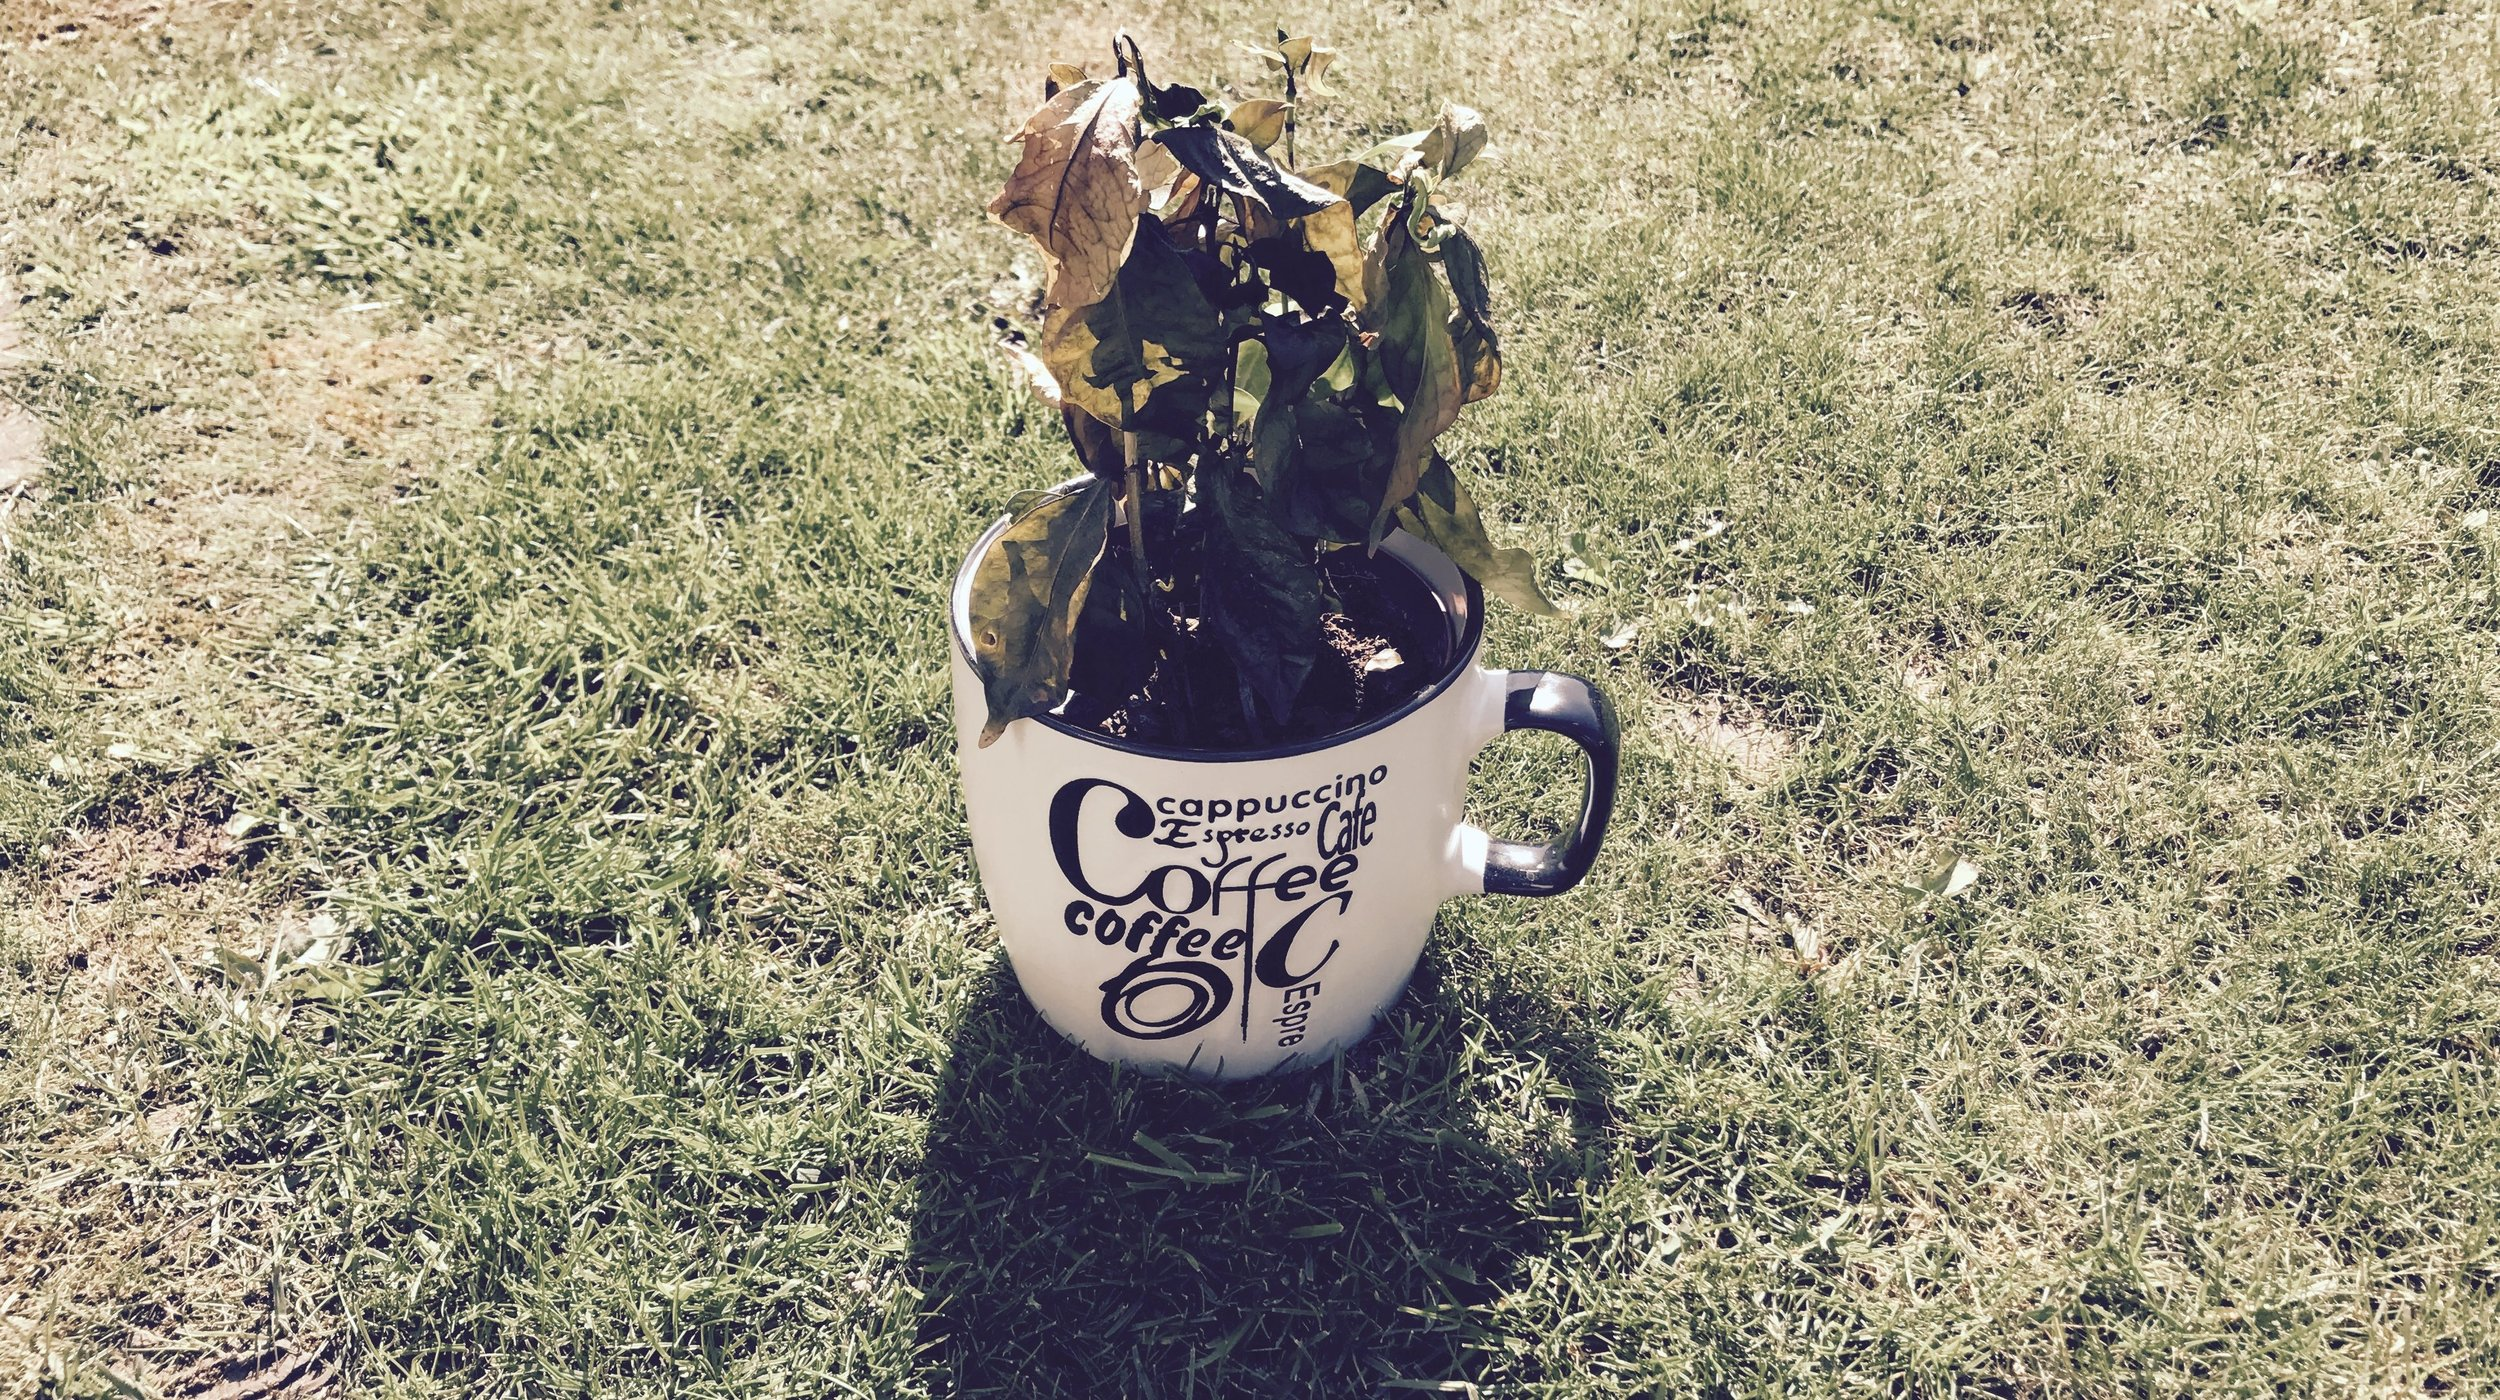 Coffee-plant-died-e1491750884897.jpg